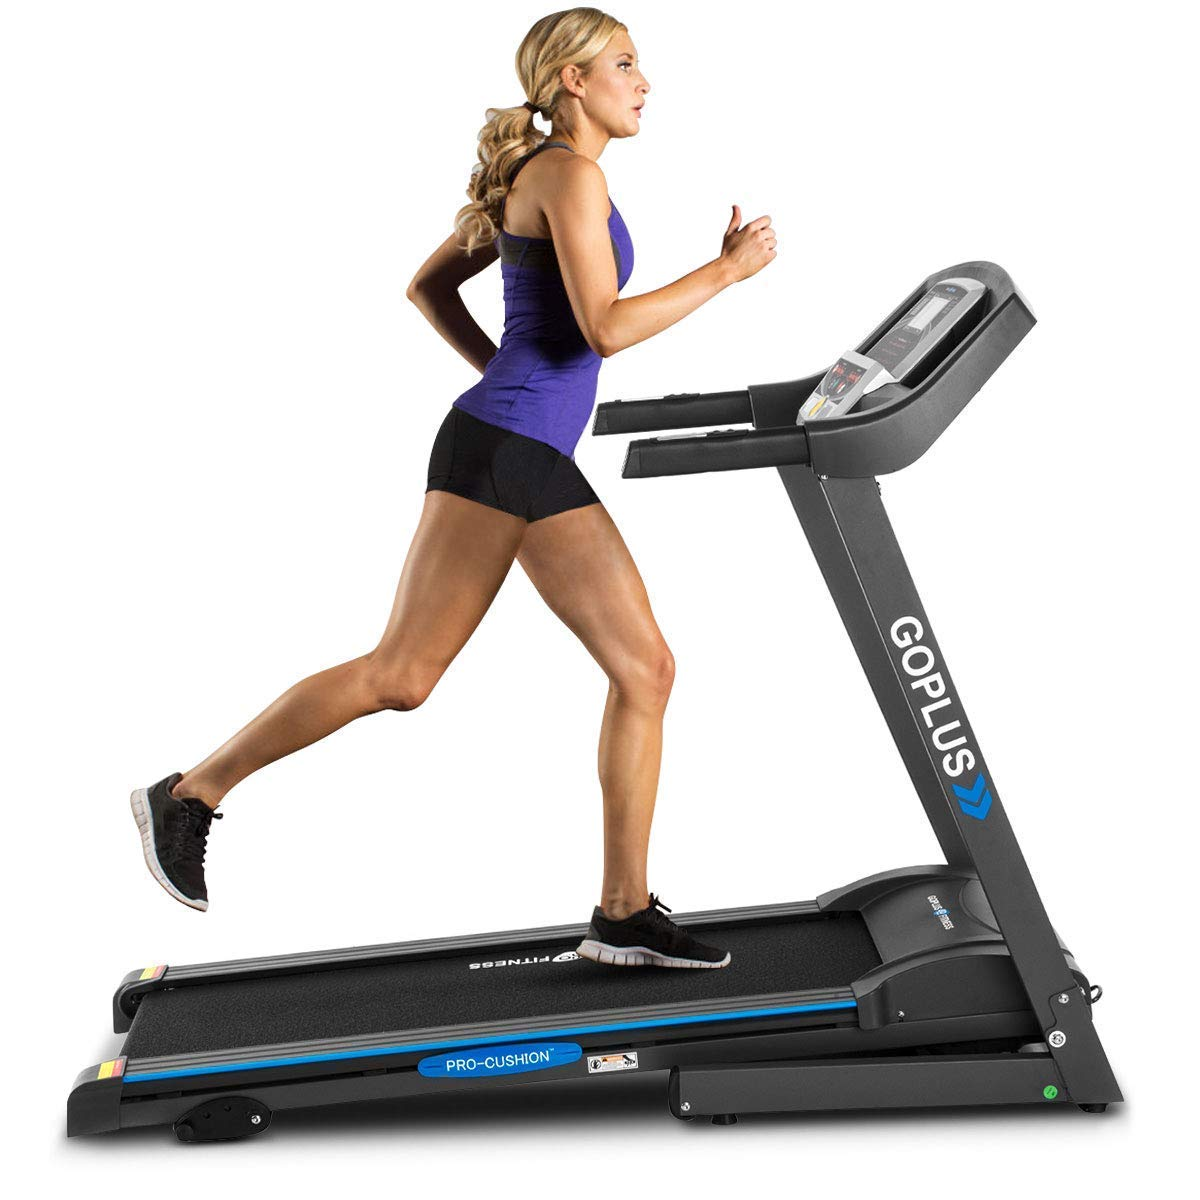 GOPLUS 2.25HP Electric Folding Treadmill with Incline, Walking Running Jogging Fitness Machine with Blue Backlit LCD Display for Home Gym Cardio Fitness